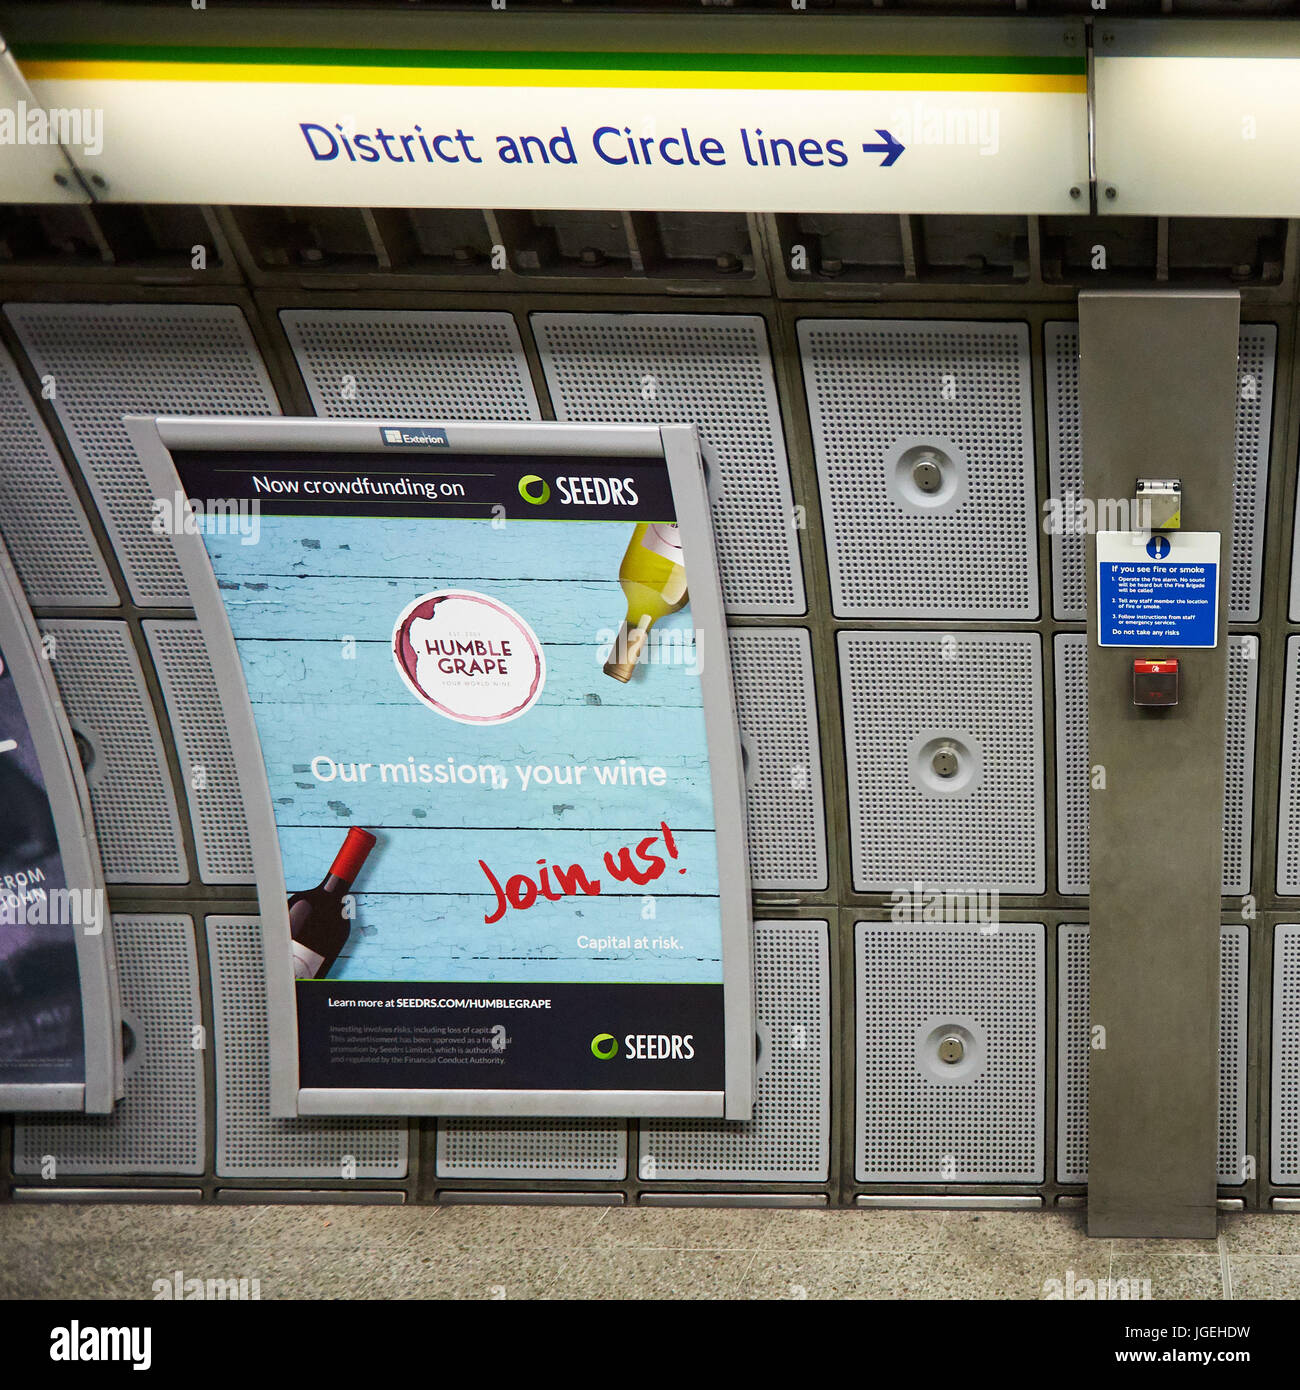 A crowdfunding poster for Humble Grape on Seedrs on the platform at Westminster underground station - Stock Image